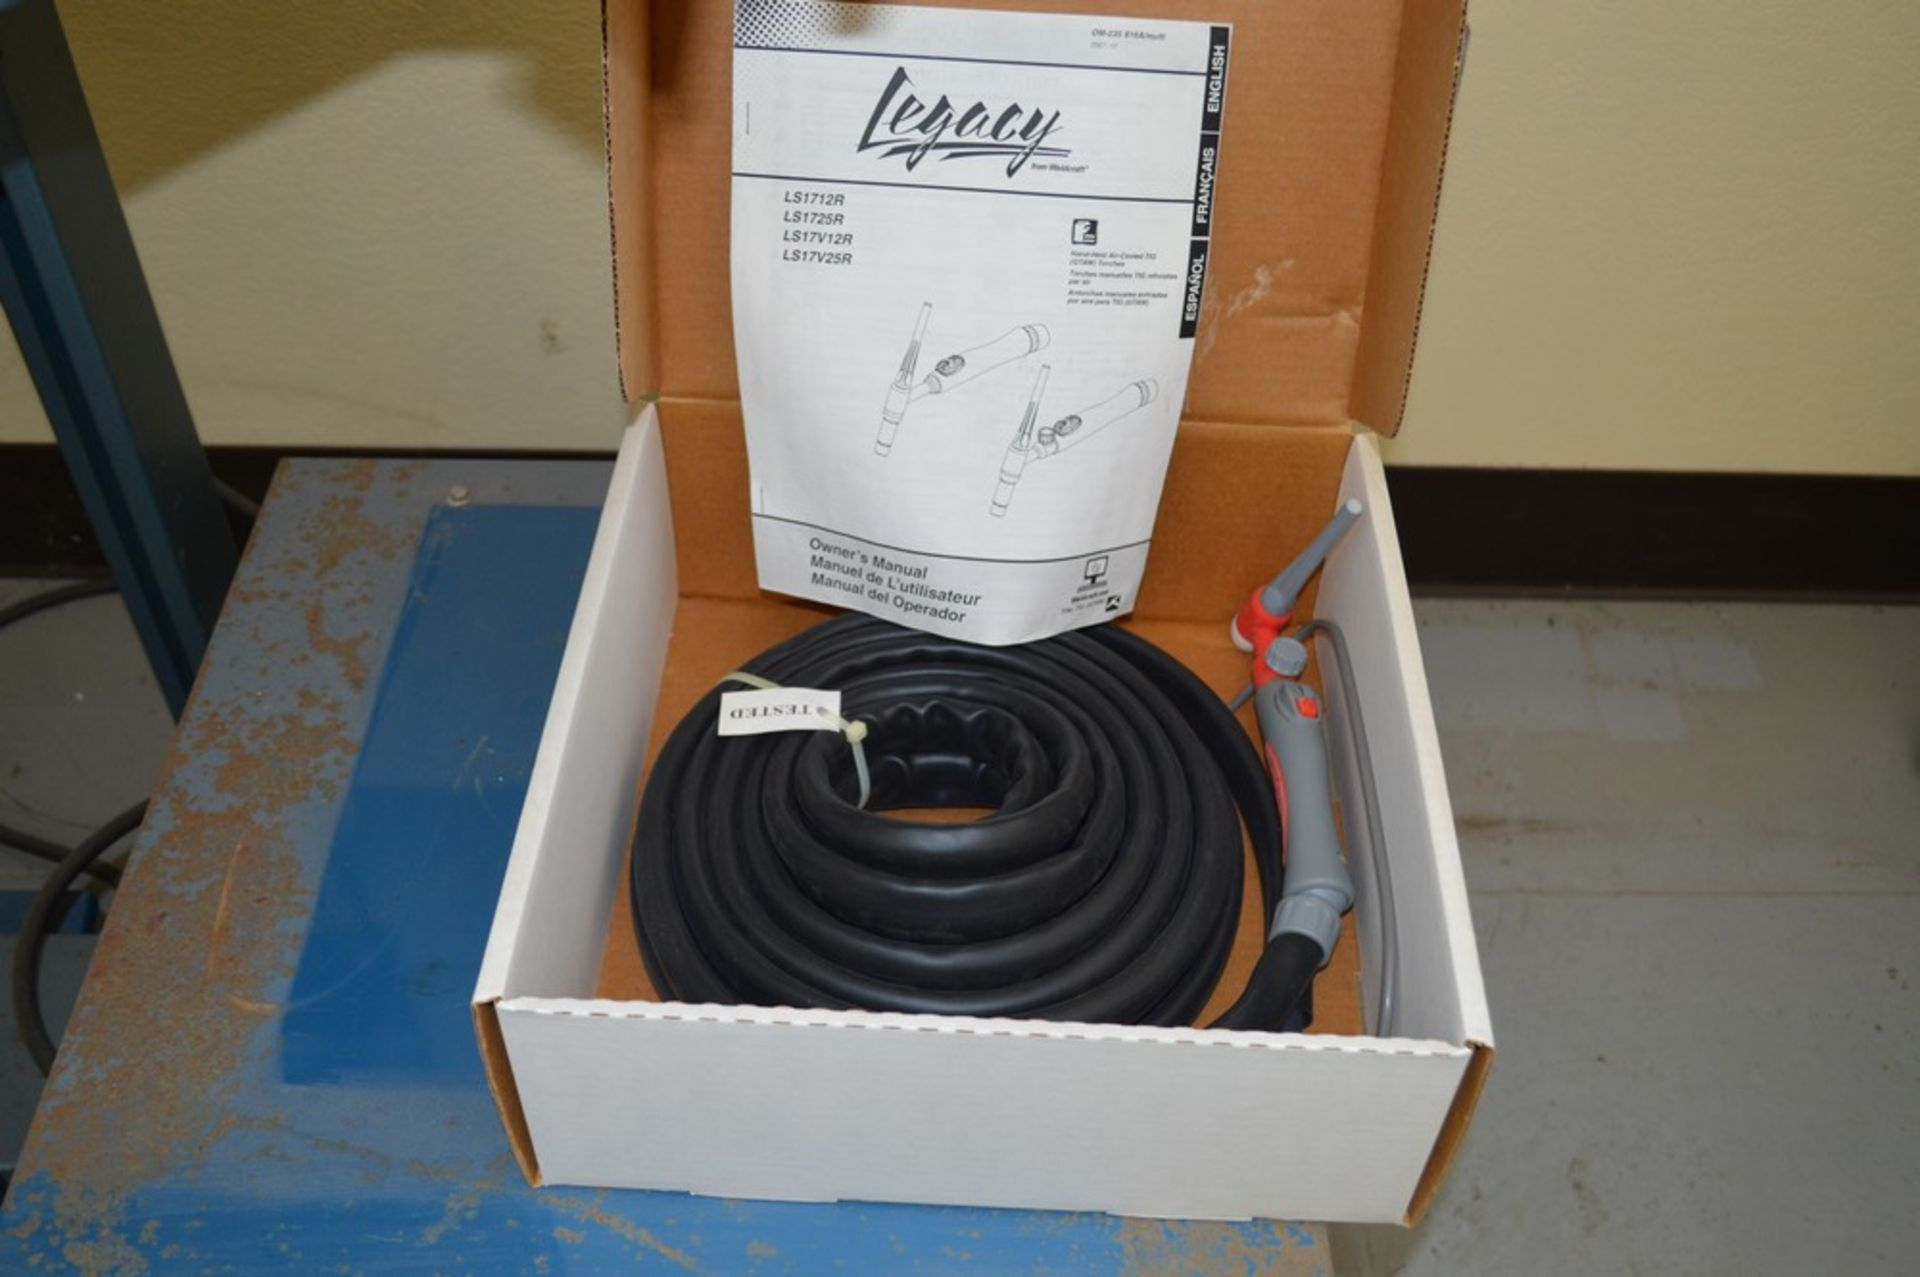 Miller Auto Arc Tig 50A With Tig Legacy 25' Torch Package - Image 4 of 4